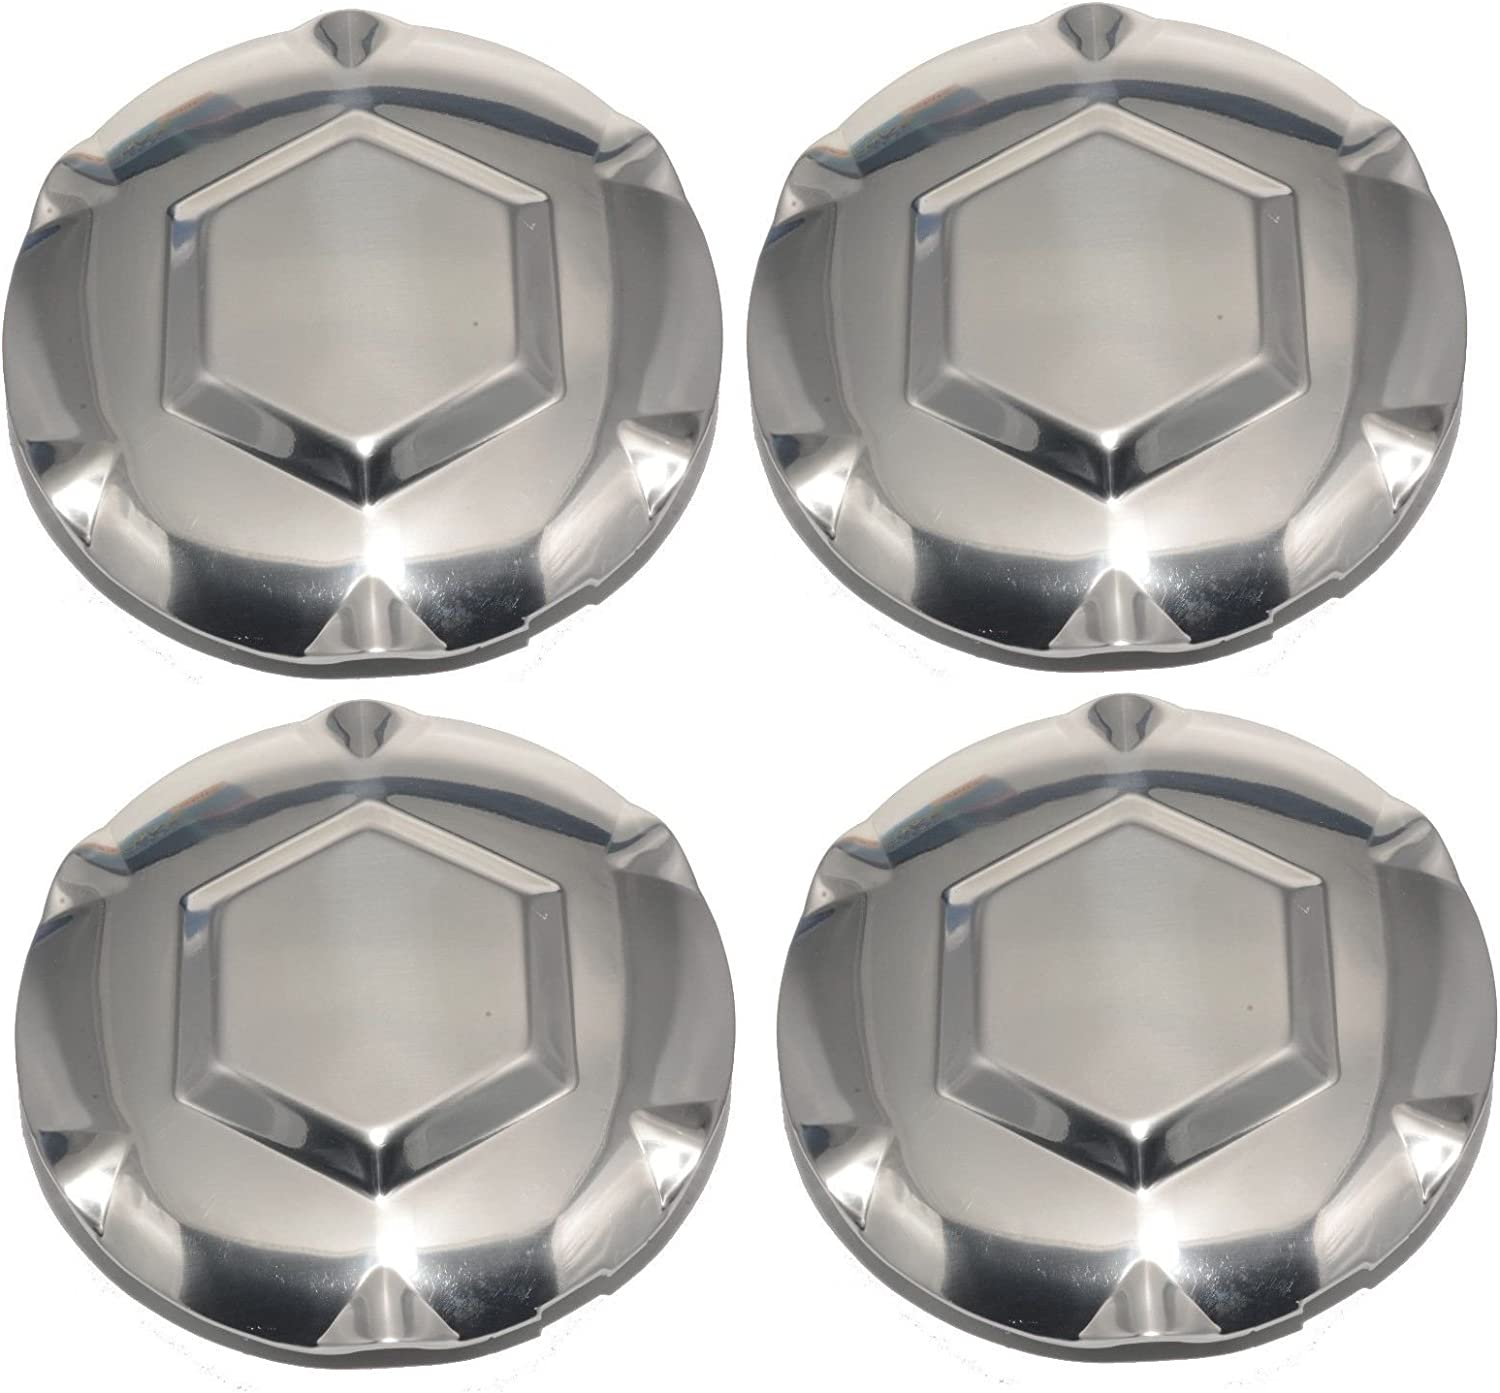 BB Auto Supply Max 46% OFF Set of 4 New 2002-2007 in GMC Envoy OFFicial site XUV 17 XL N80